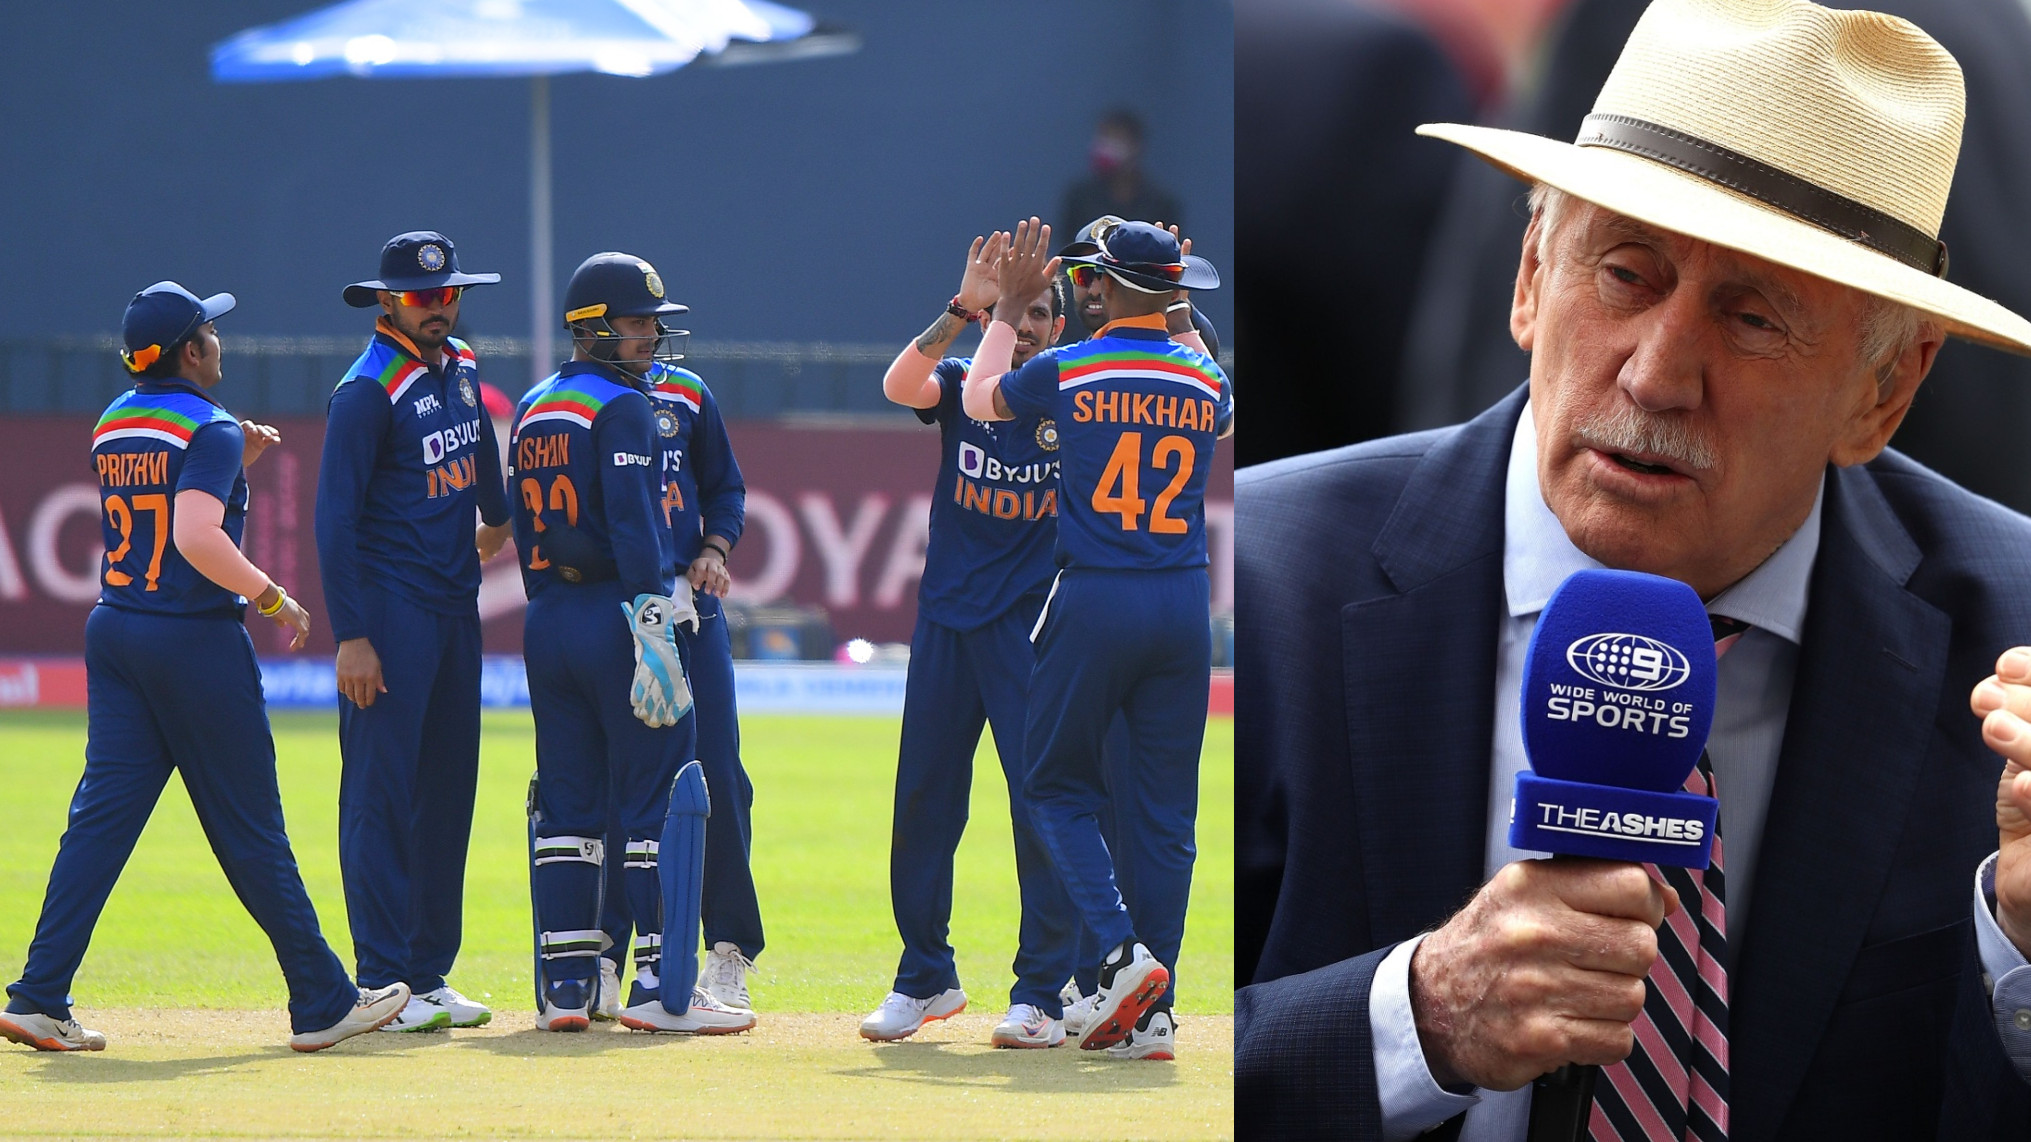 When it comes to batting talent depth, India are best placed of all teams, says Ian Chappell